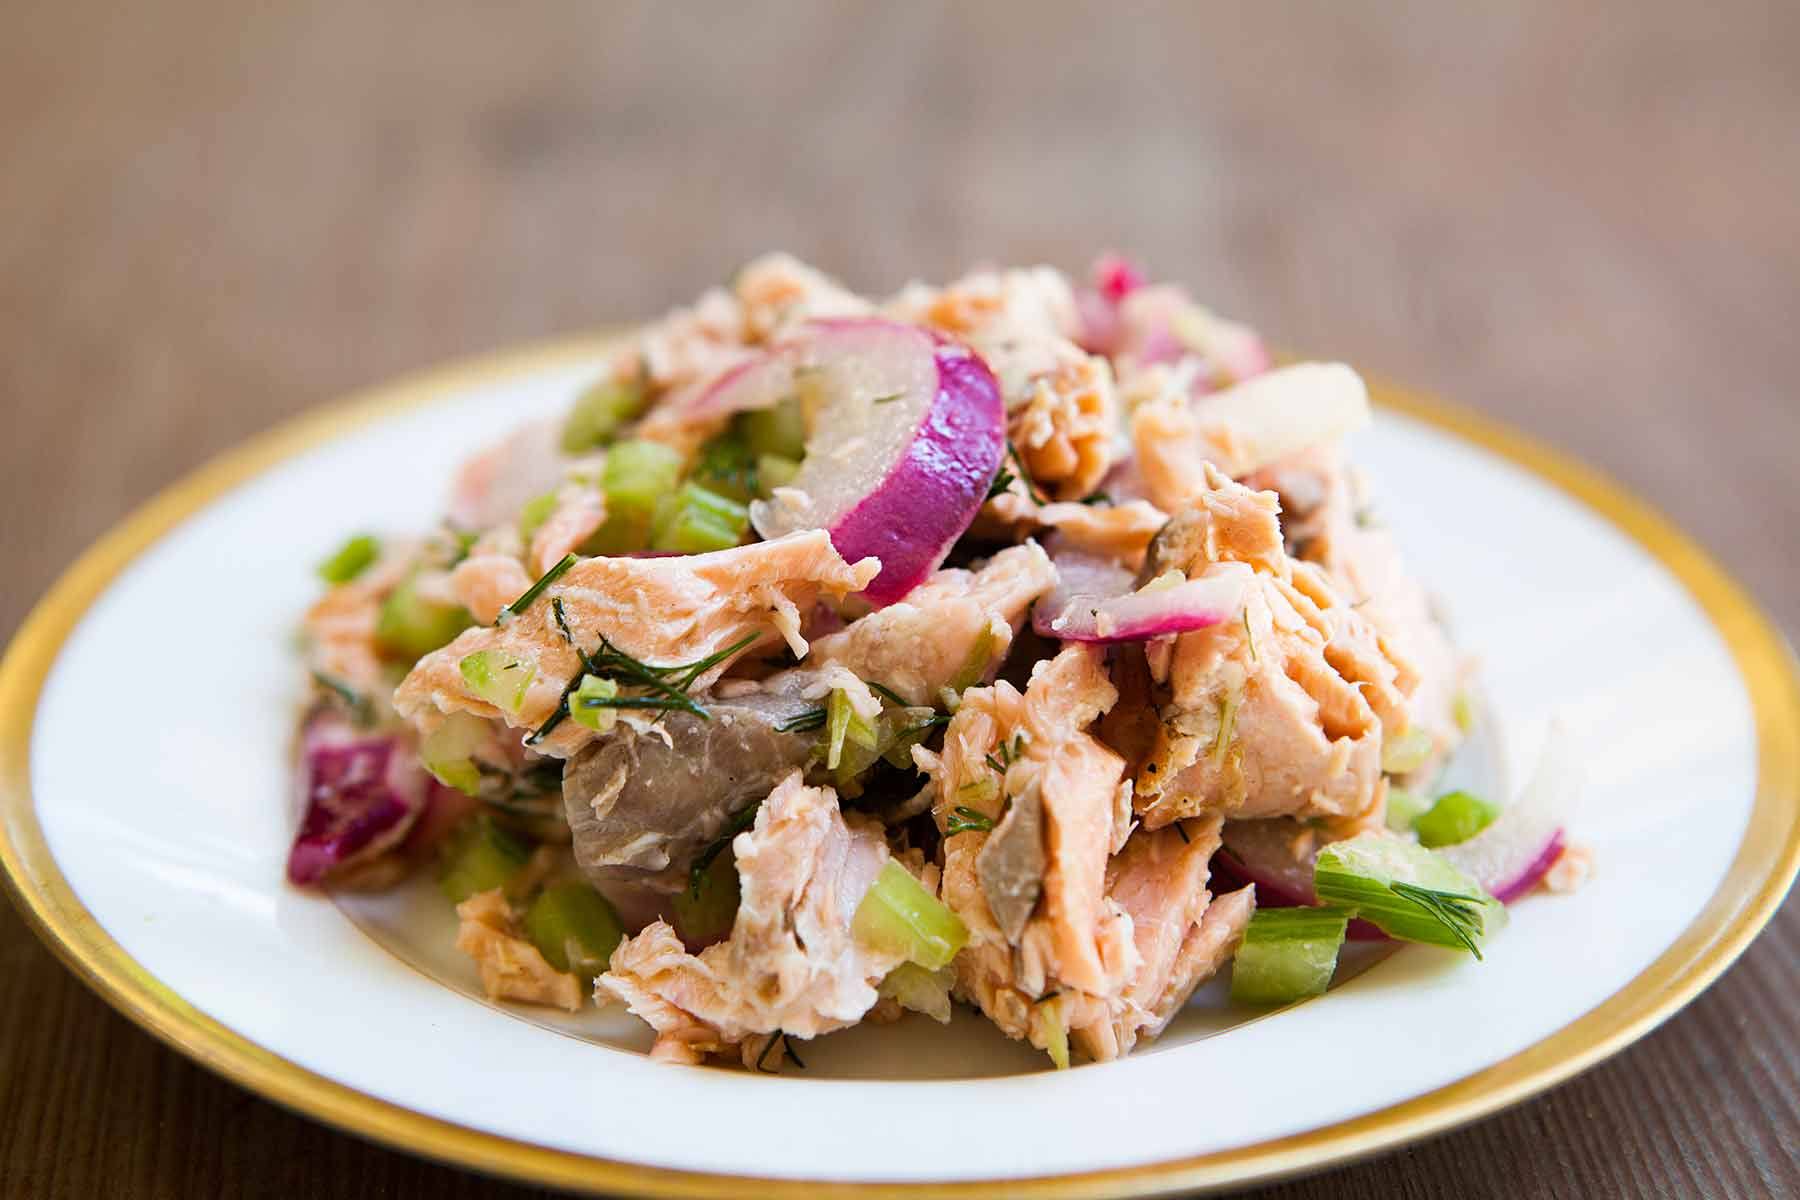 How to make Salmon Salad